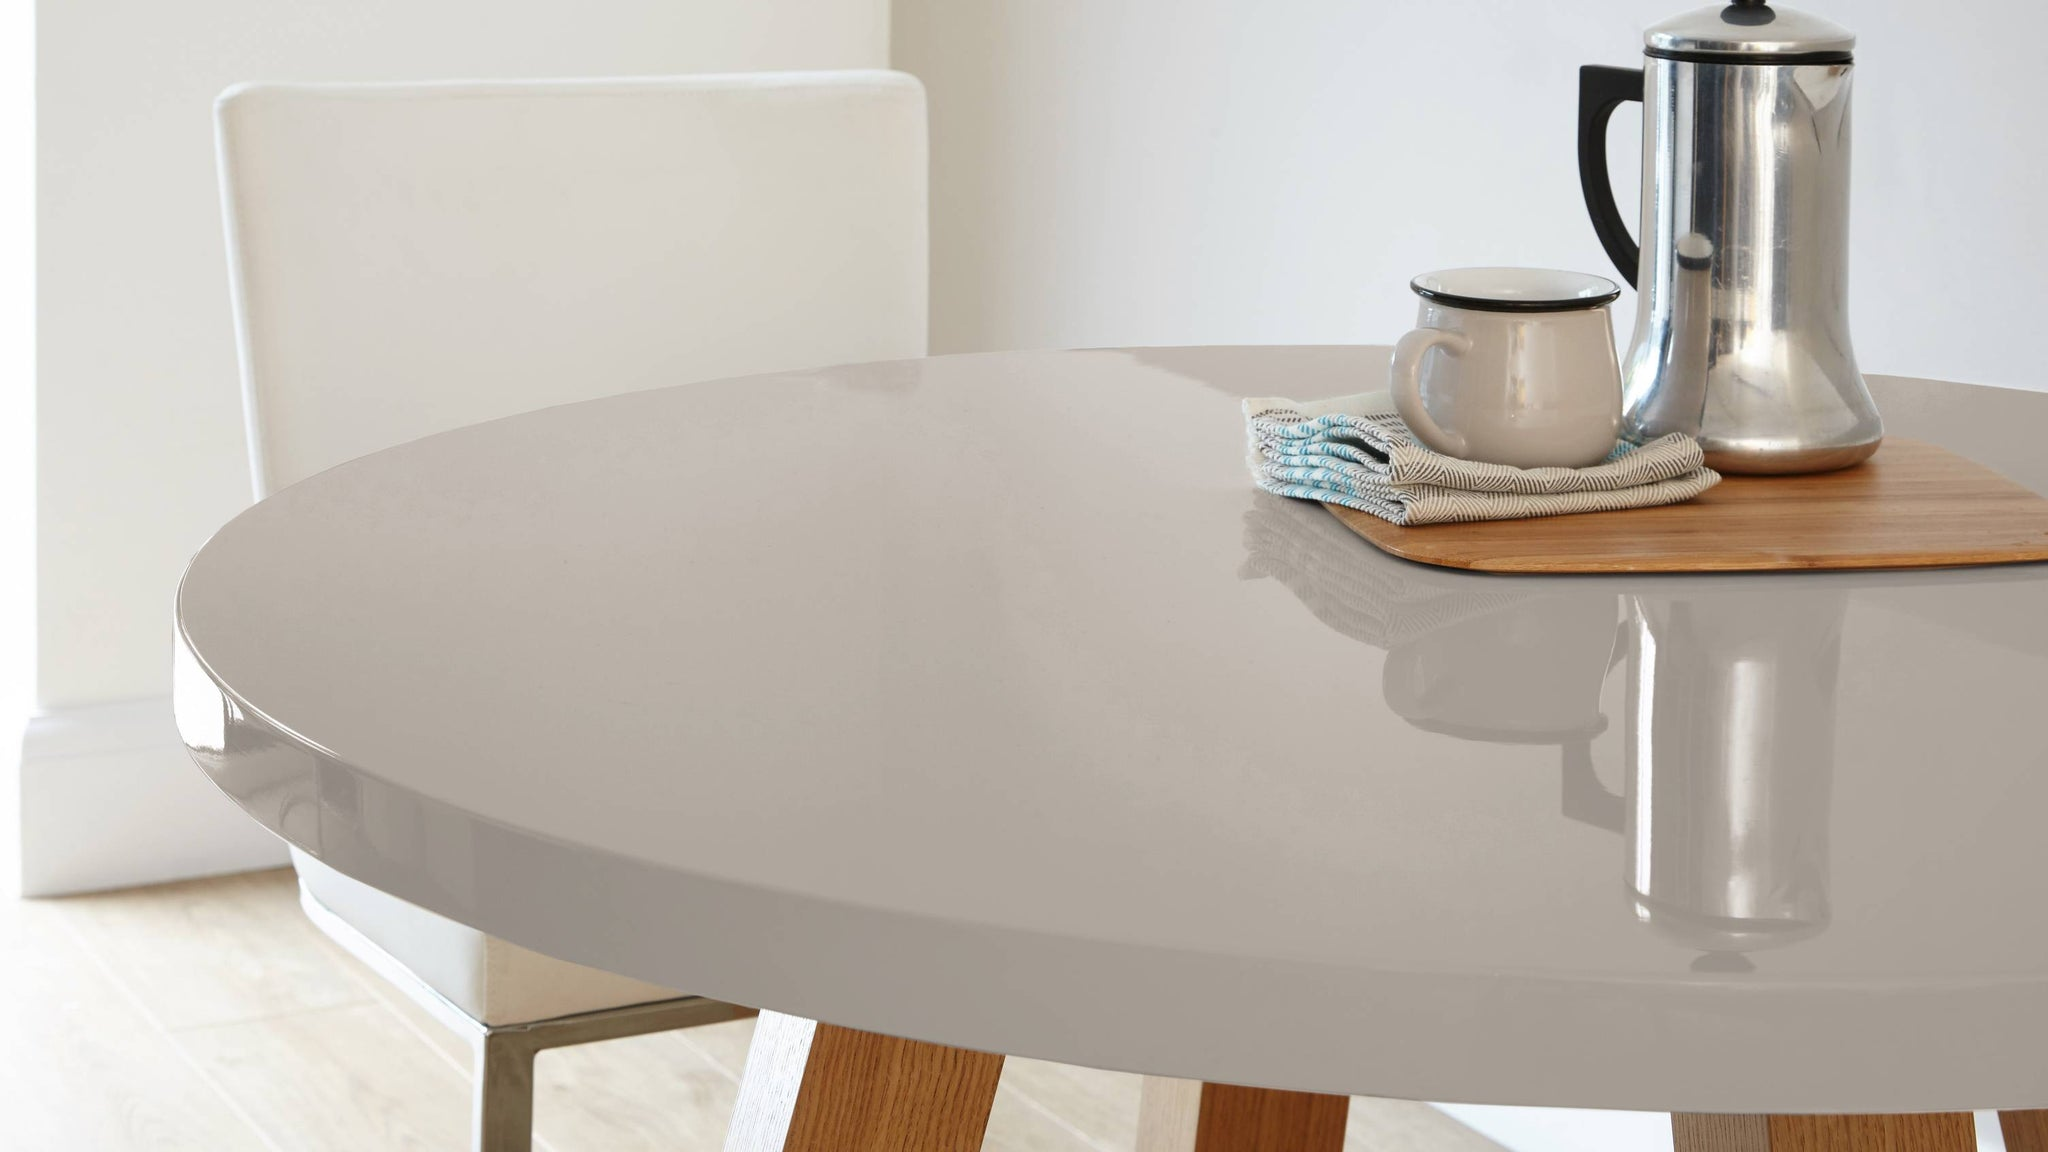 grey gloss four seater round table with oak veneer legs Exclusively Danetti with Julia Kendell Range